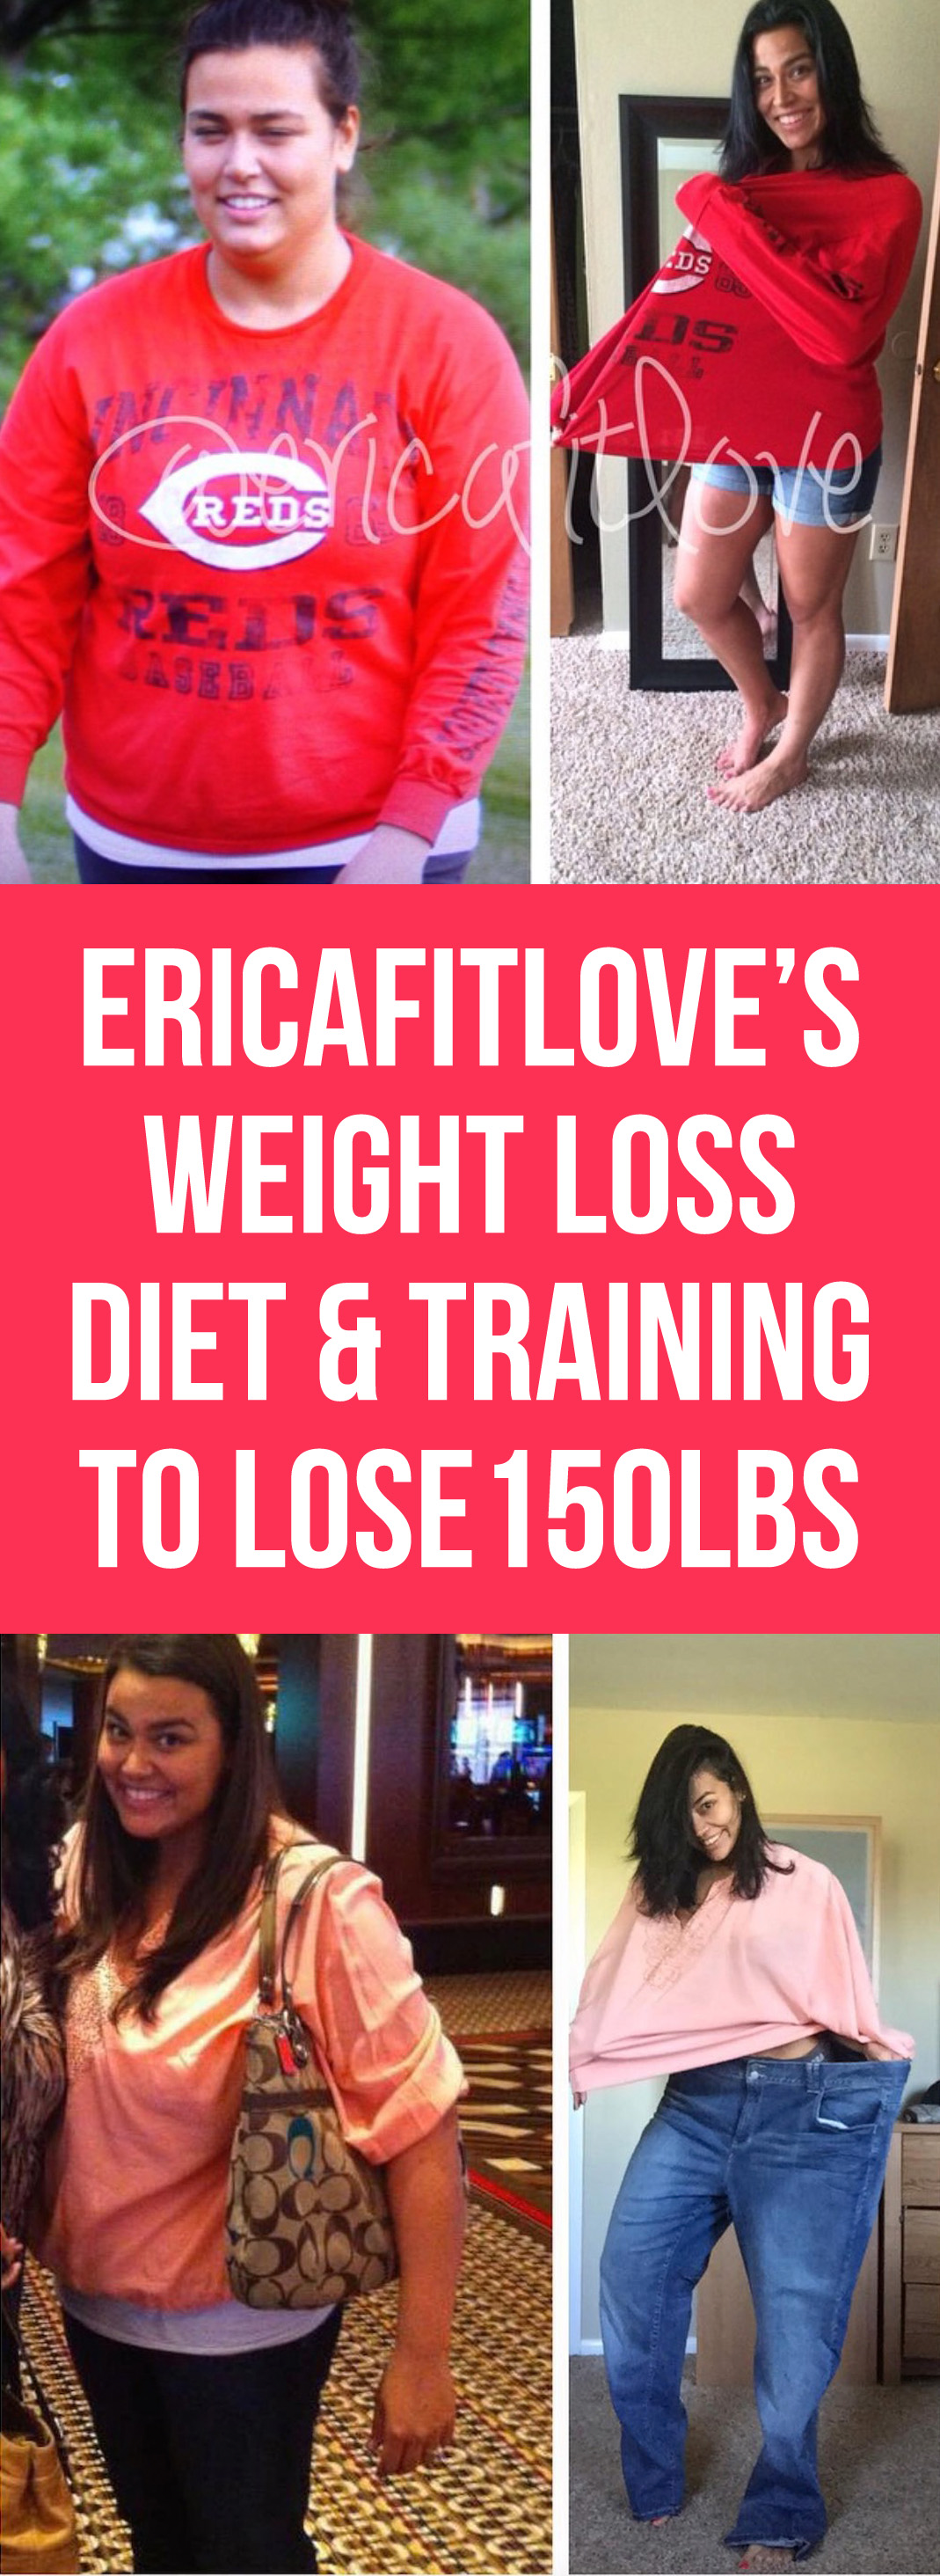 Erica-Fit-Love-Erica-Lugo-Weight-Loss